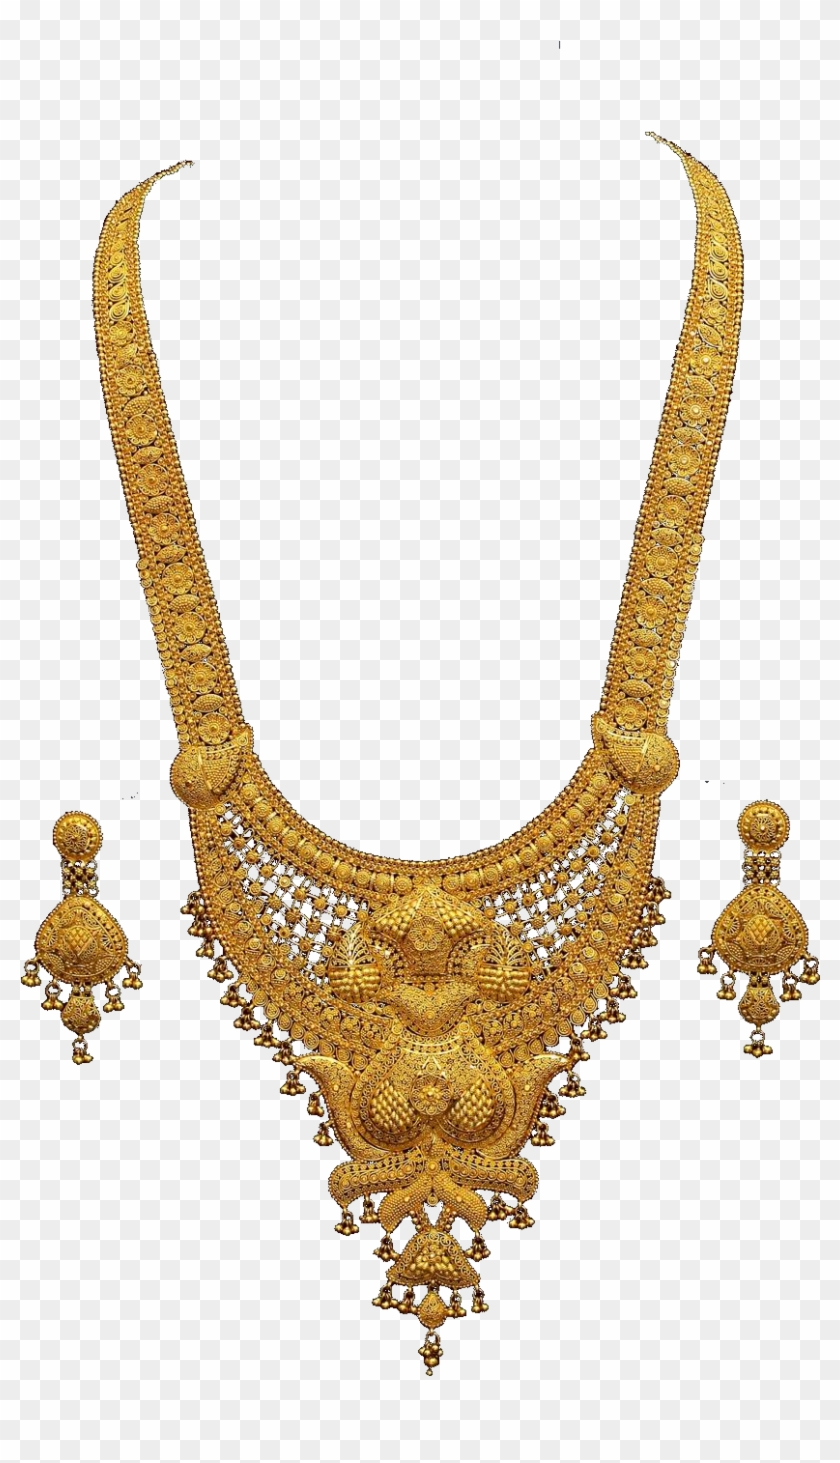 Gold dust buyers in clipart png free library Trusted Gold Necklace Buyers In Pune, HD Png Download - 828x1383 ... png free library